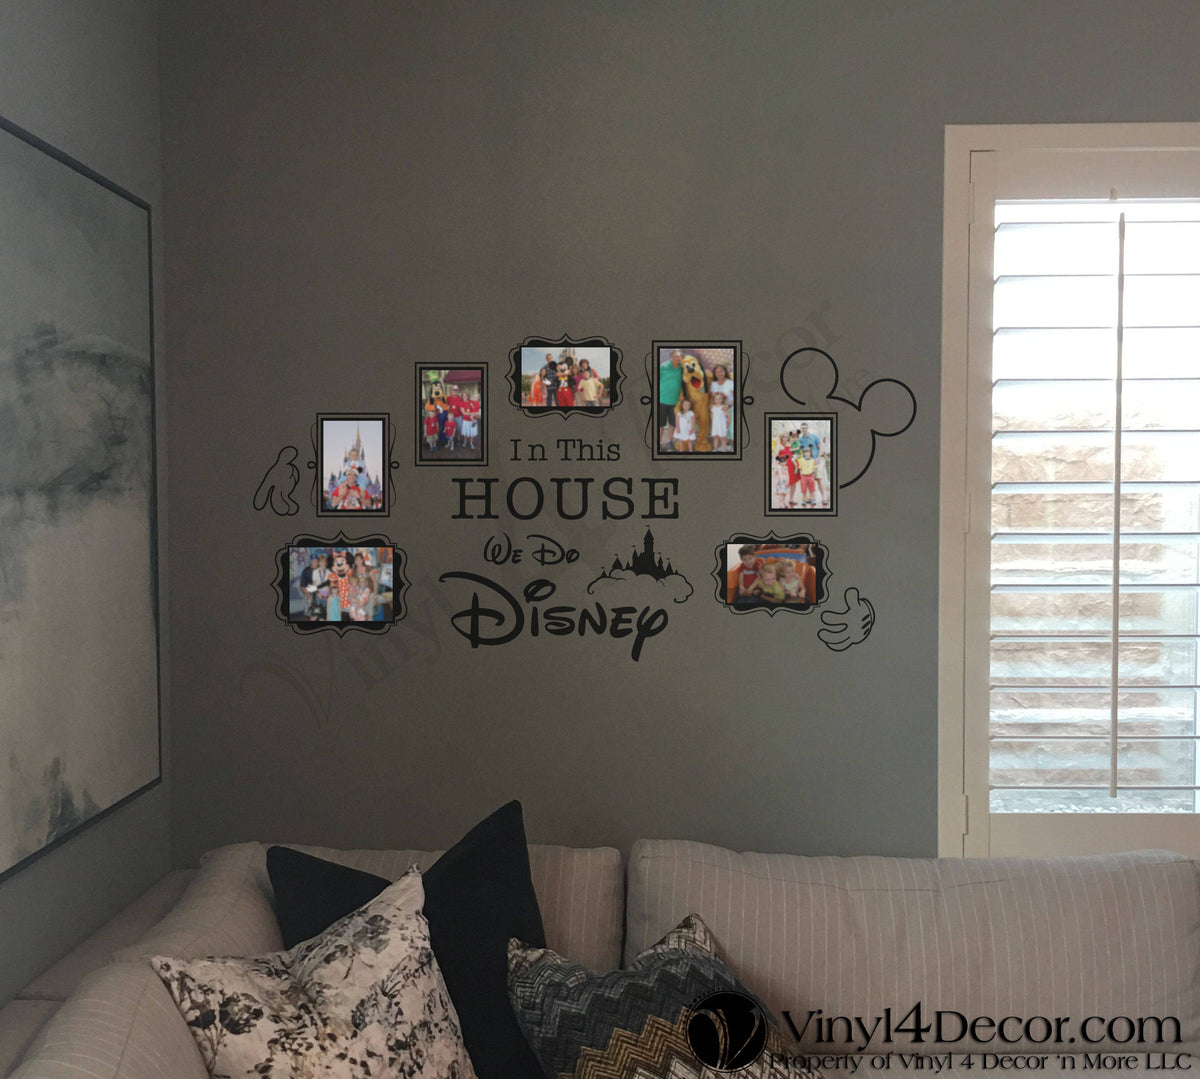 In This House Disney We Do Disney Photo Frames 5 4 X 6 And 2 5 X 7 Vinyl Decal Disney Wall Decal Sticker Bc824